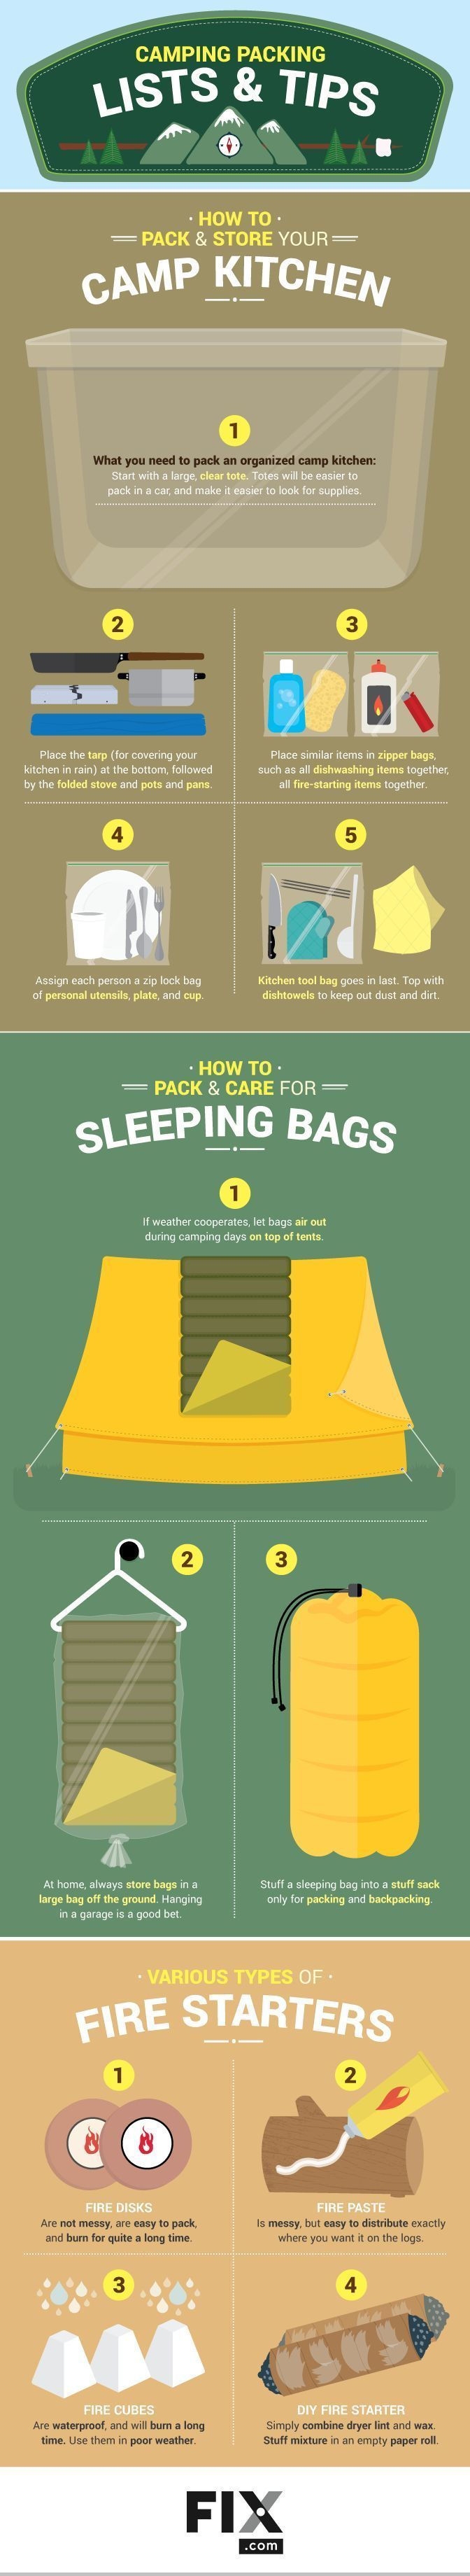 Photo of Camping Packing Lists and Tips: Everything You Need to Bring to the Campsite